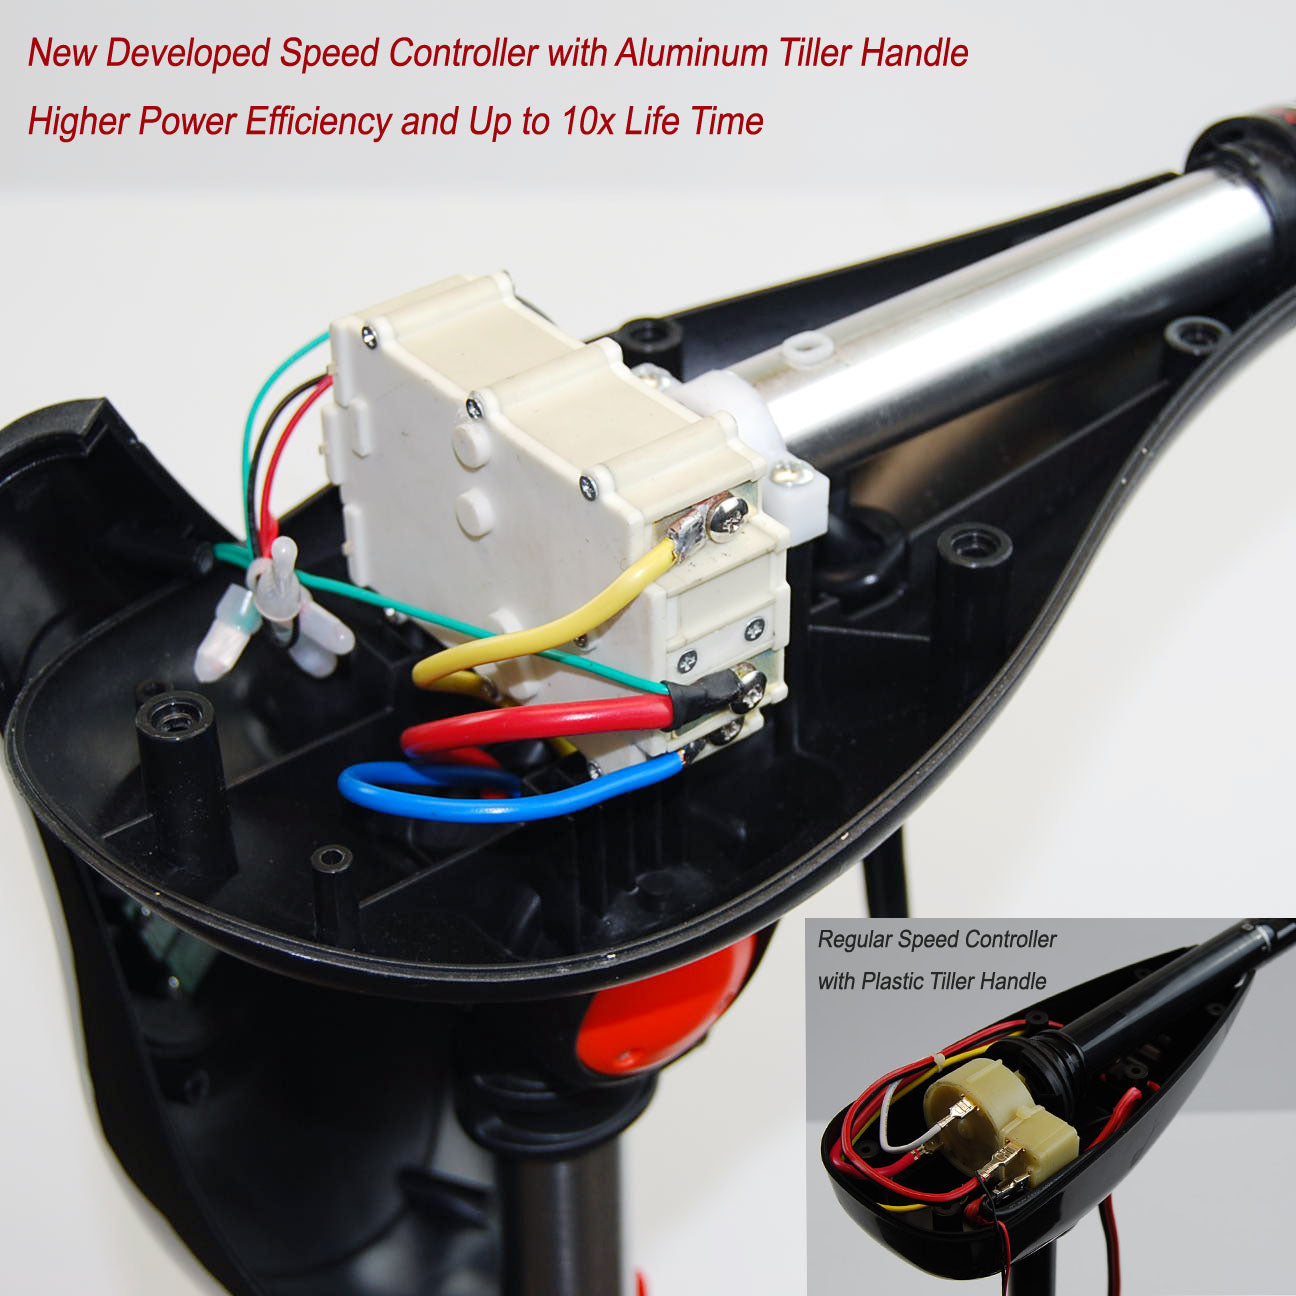 Electric Trolling Motor Seamax Marine Volt Plug Wiring Diagram Further 24 12v Speedmax With 32 Inches Shaft 55 To 65 Lbs Thrust